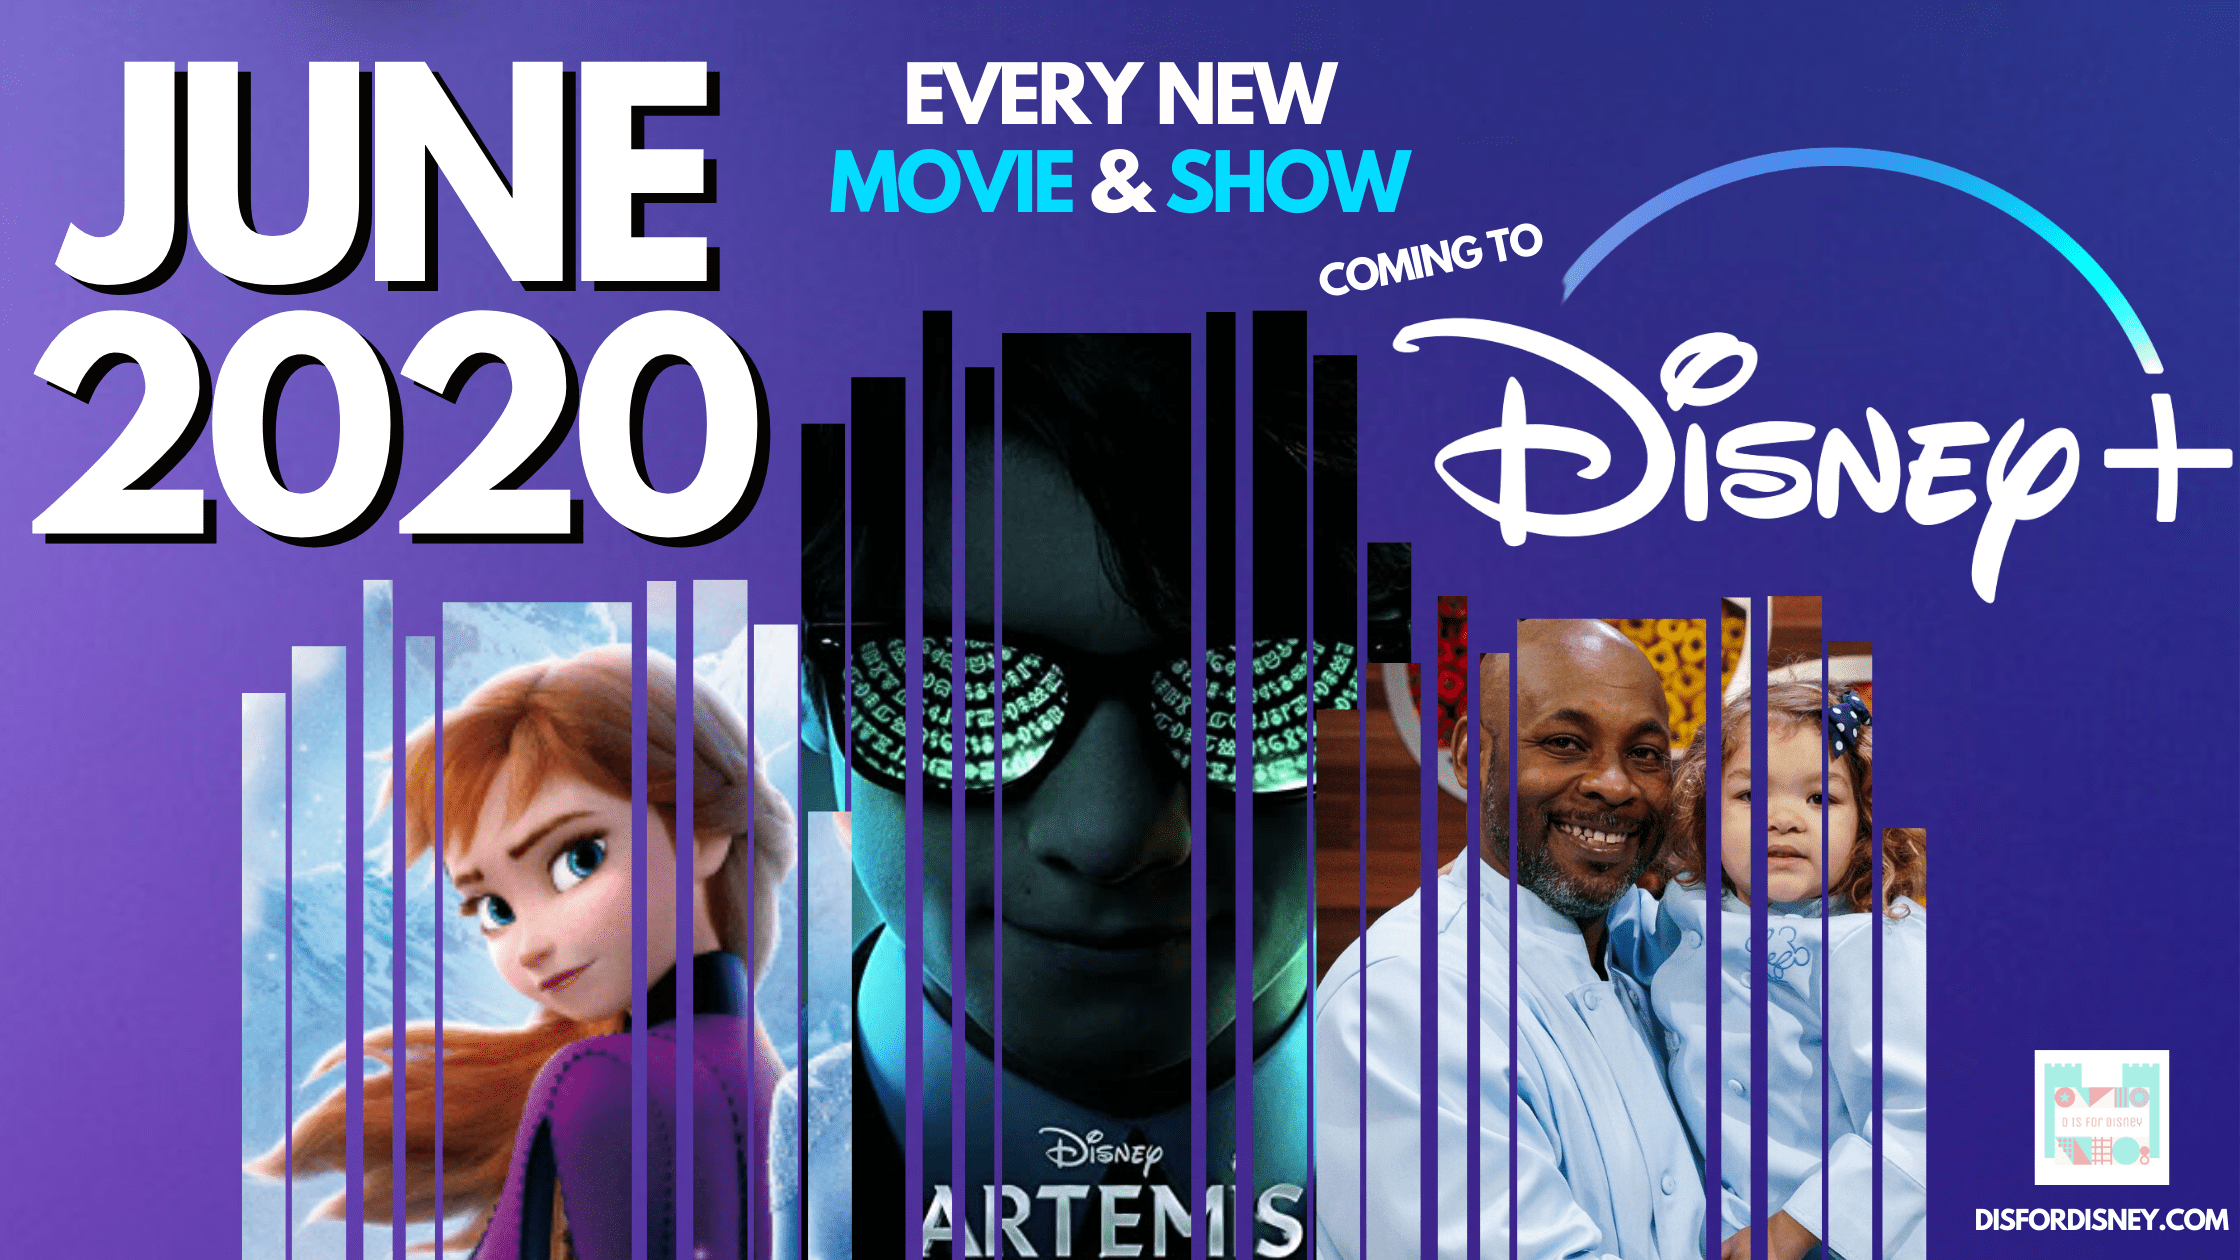 Everything Coming to Disney+ June 2020: Full Release Schedule